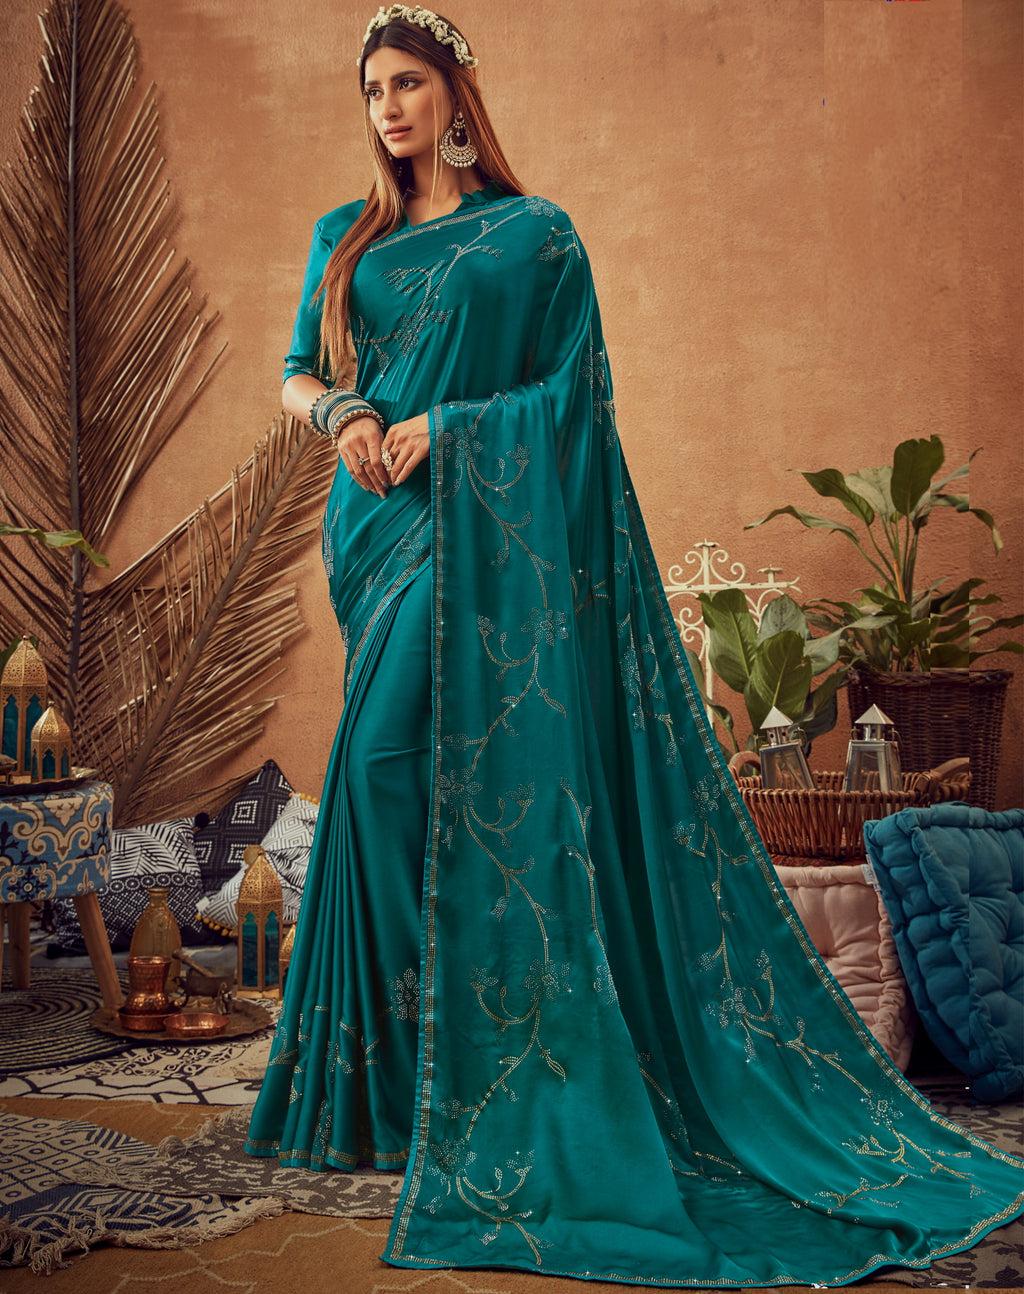 Rama Blue Color Crepe Silk Glamourous Occasion Wear Sarees NYF-6408